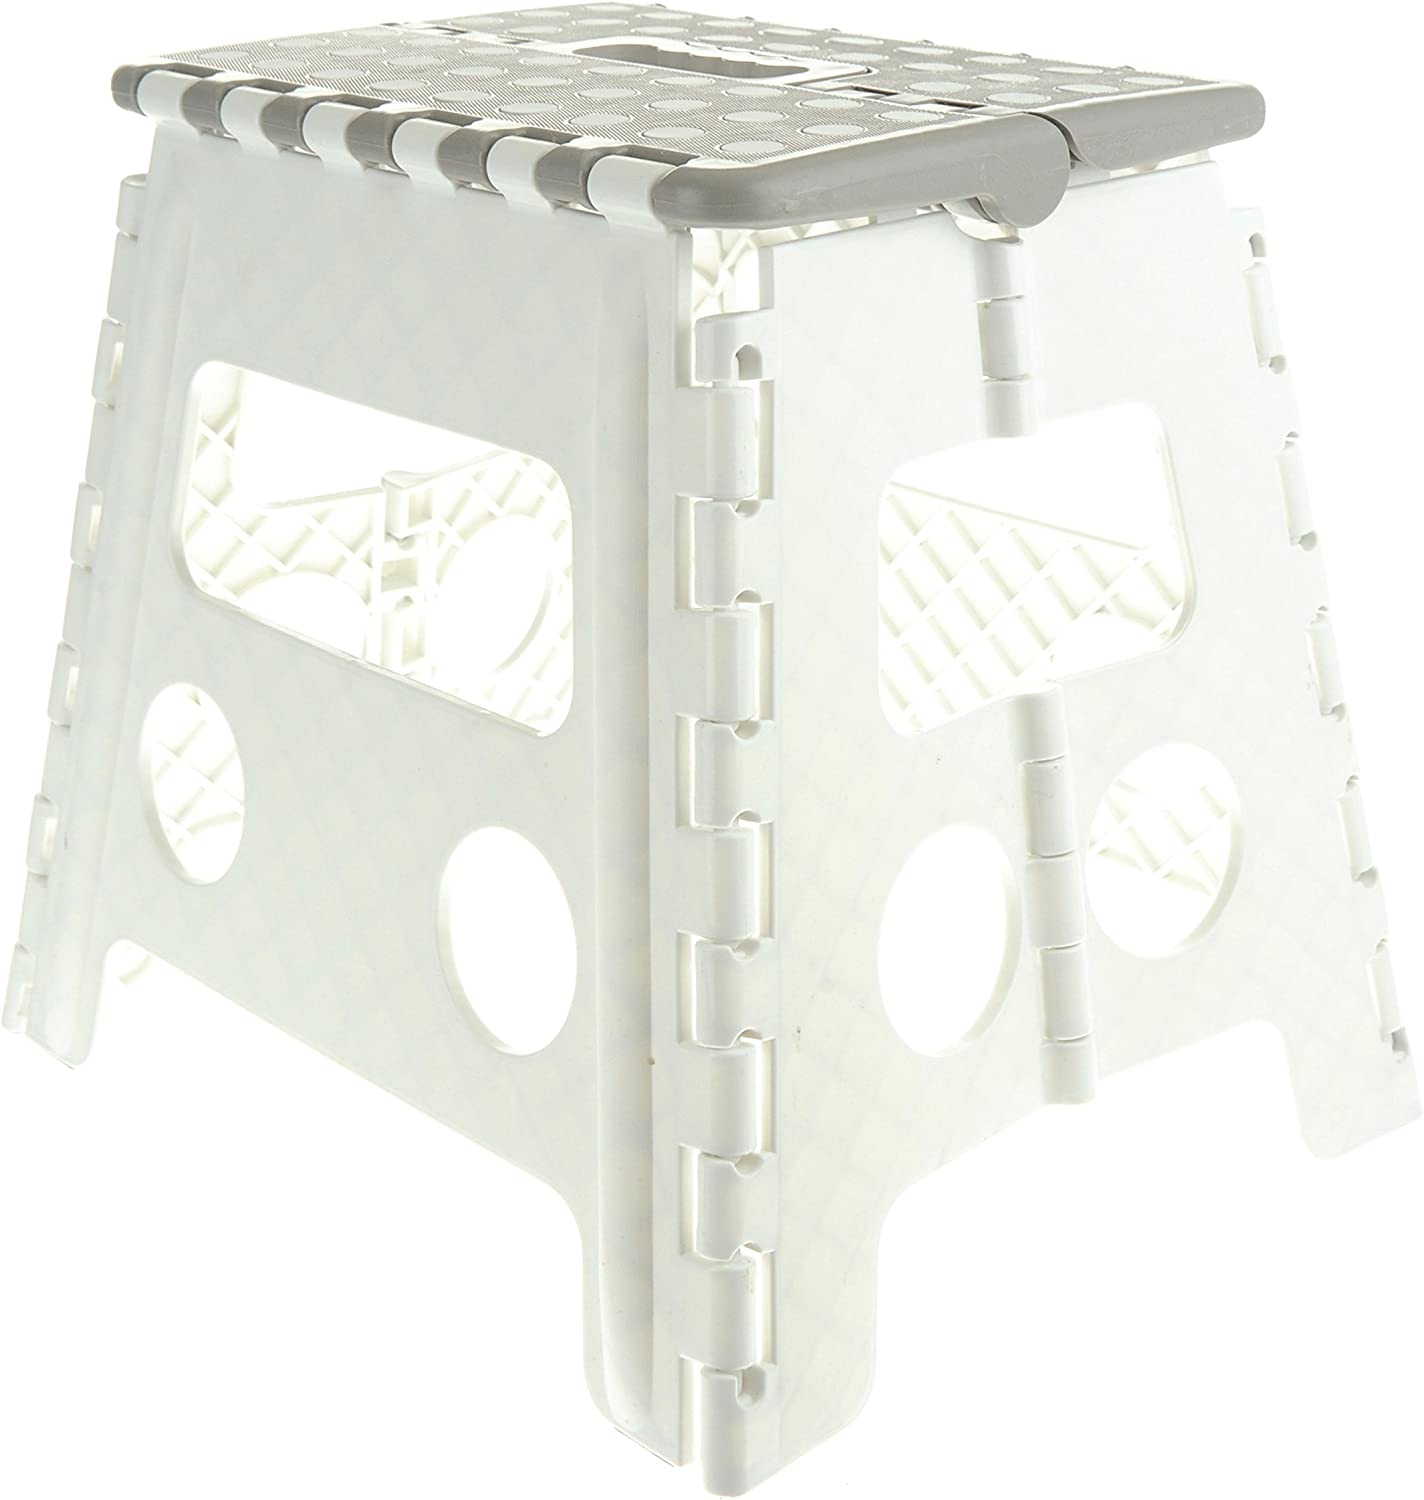 13 Non-Slip Foldable Step Stool with Carrying Handle - Supports Up ...